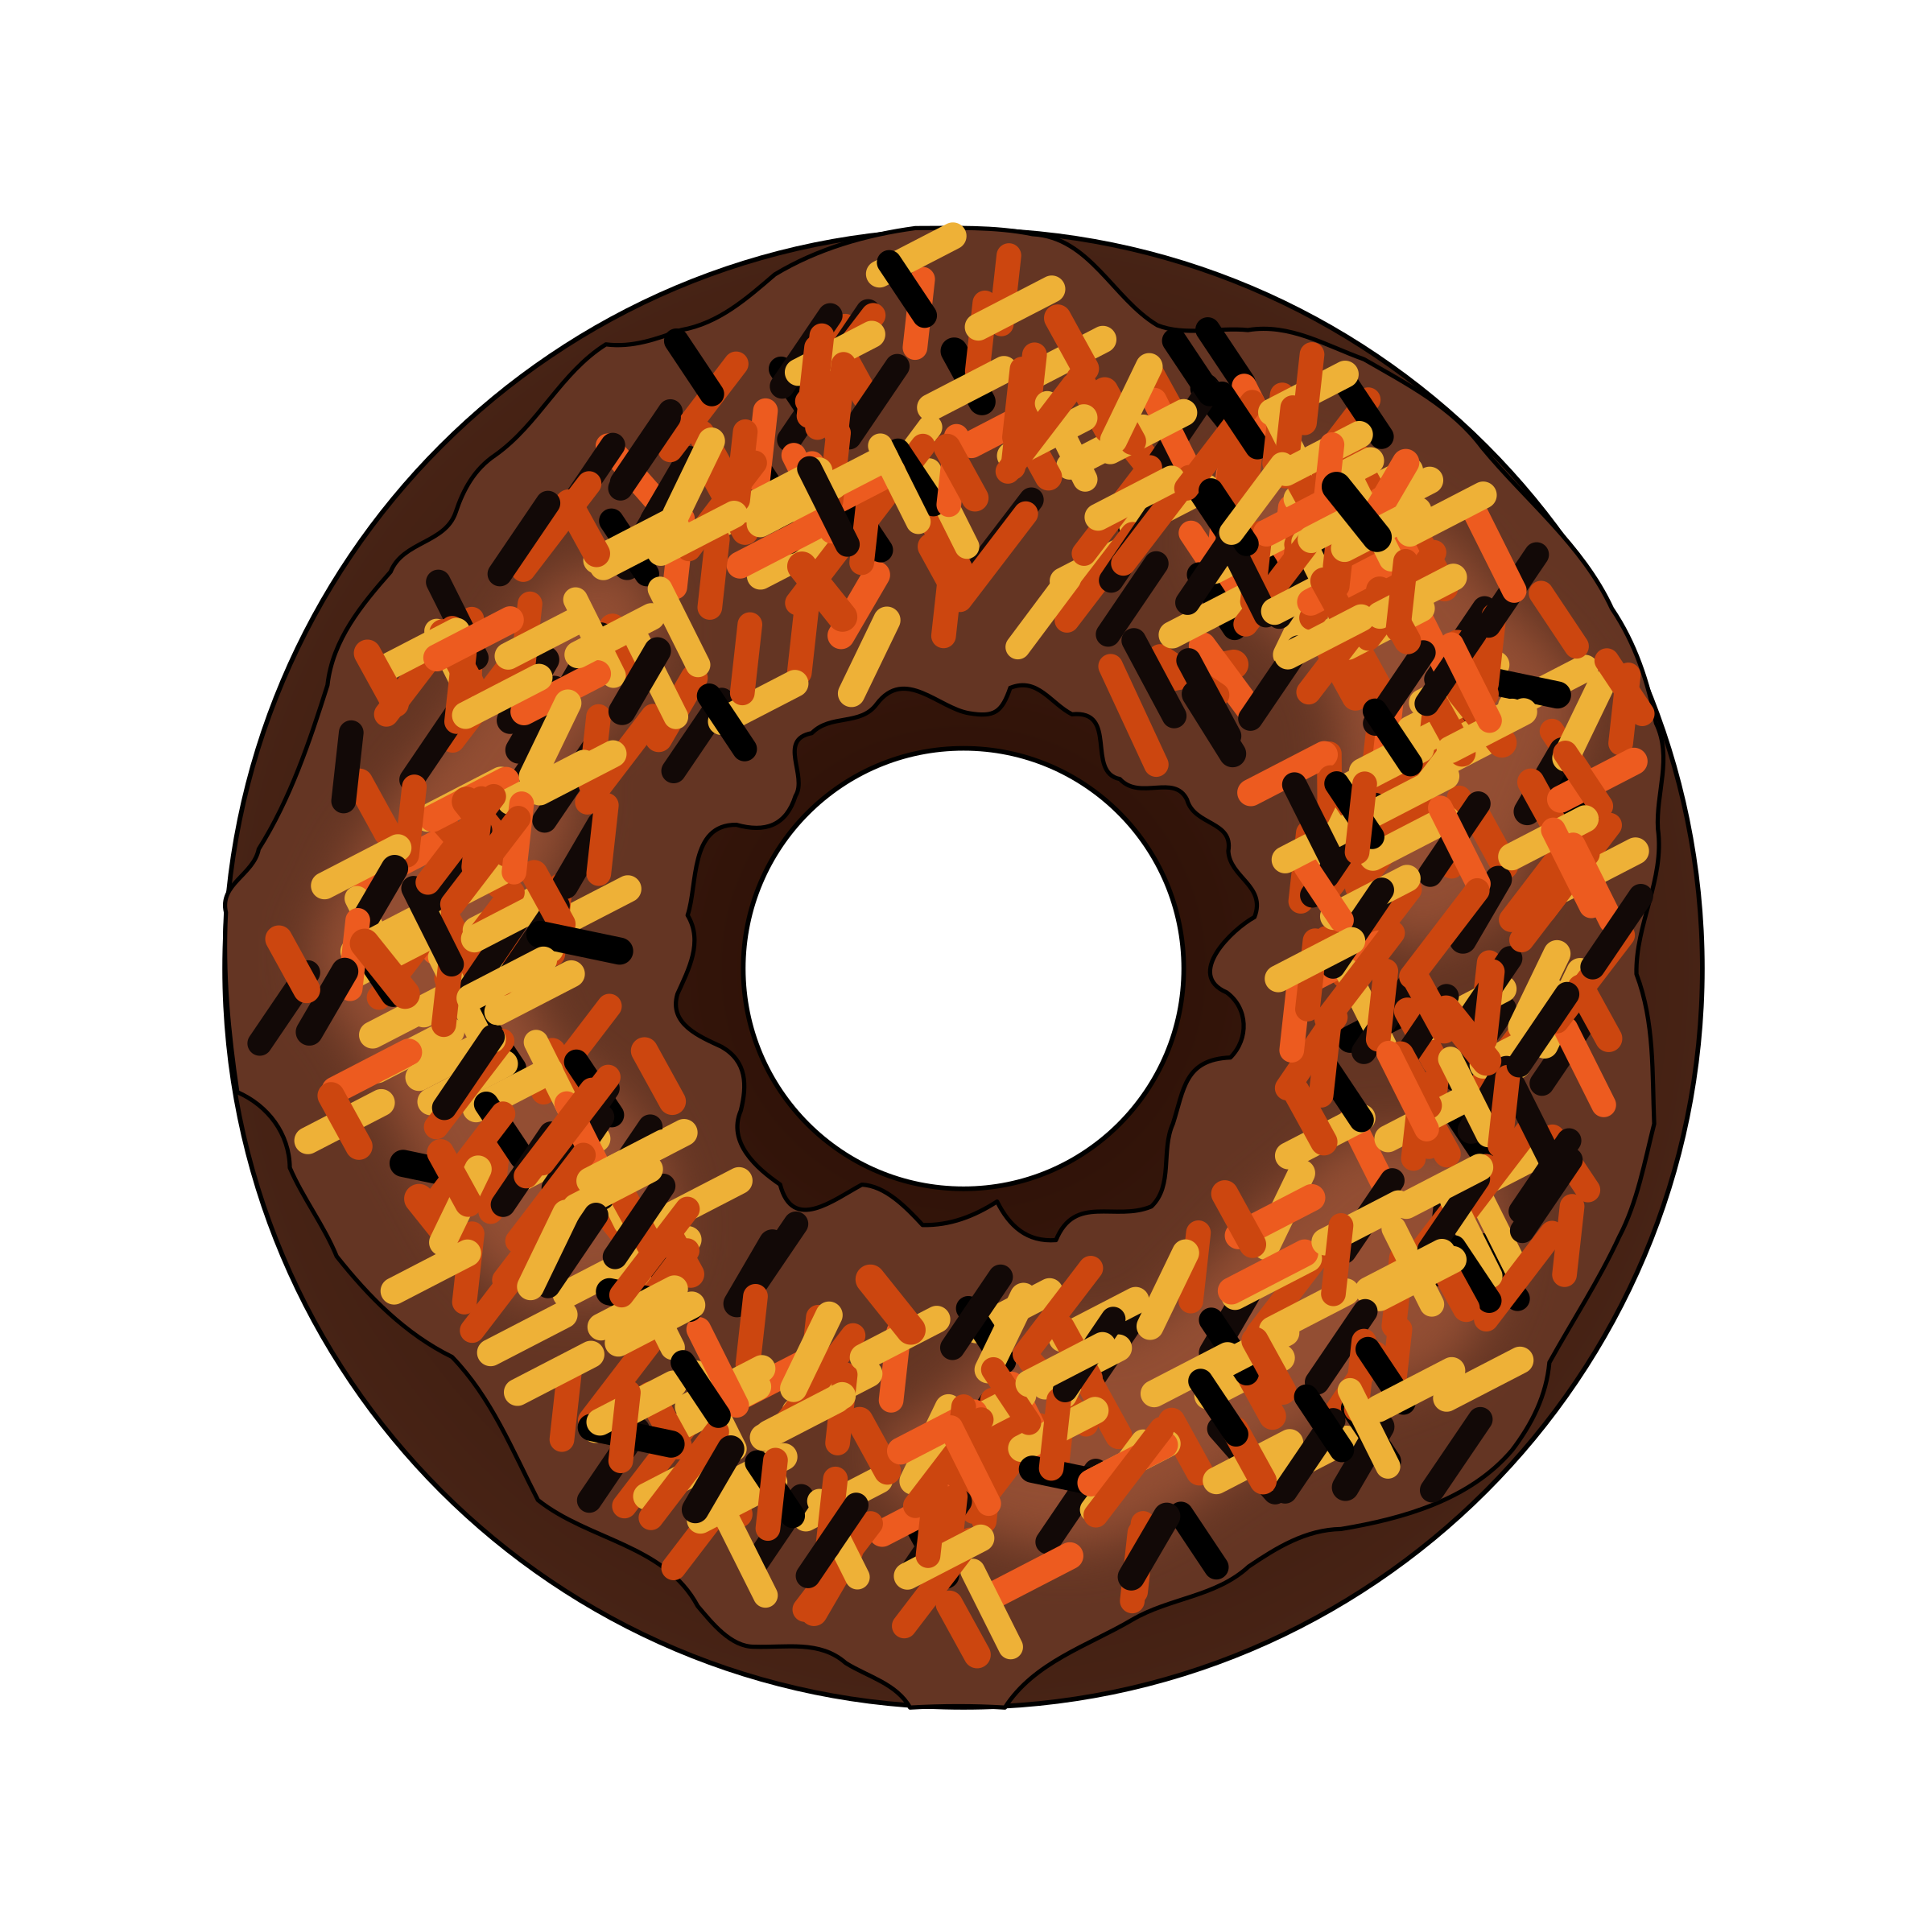 Fall or Halloween Donut by PinkJellyfish